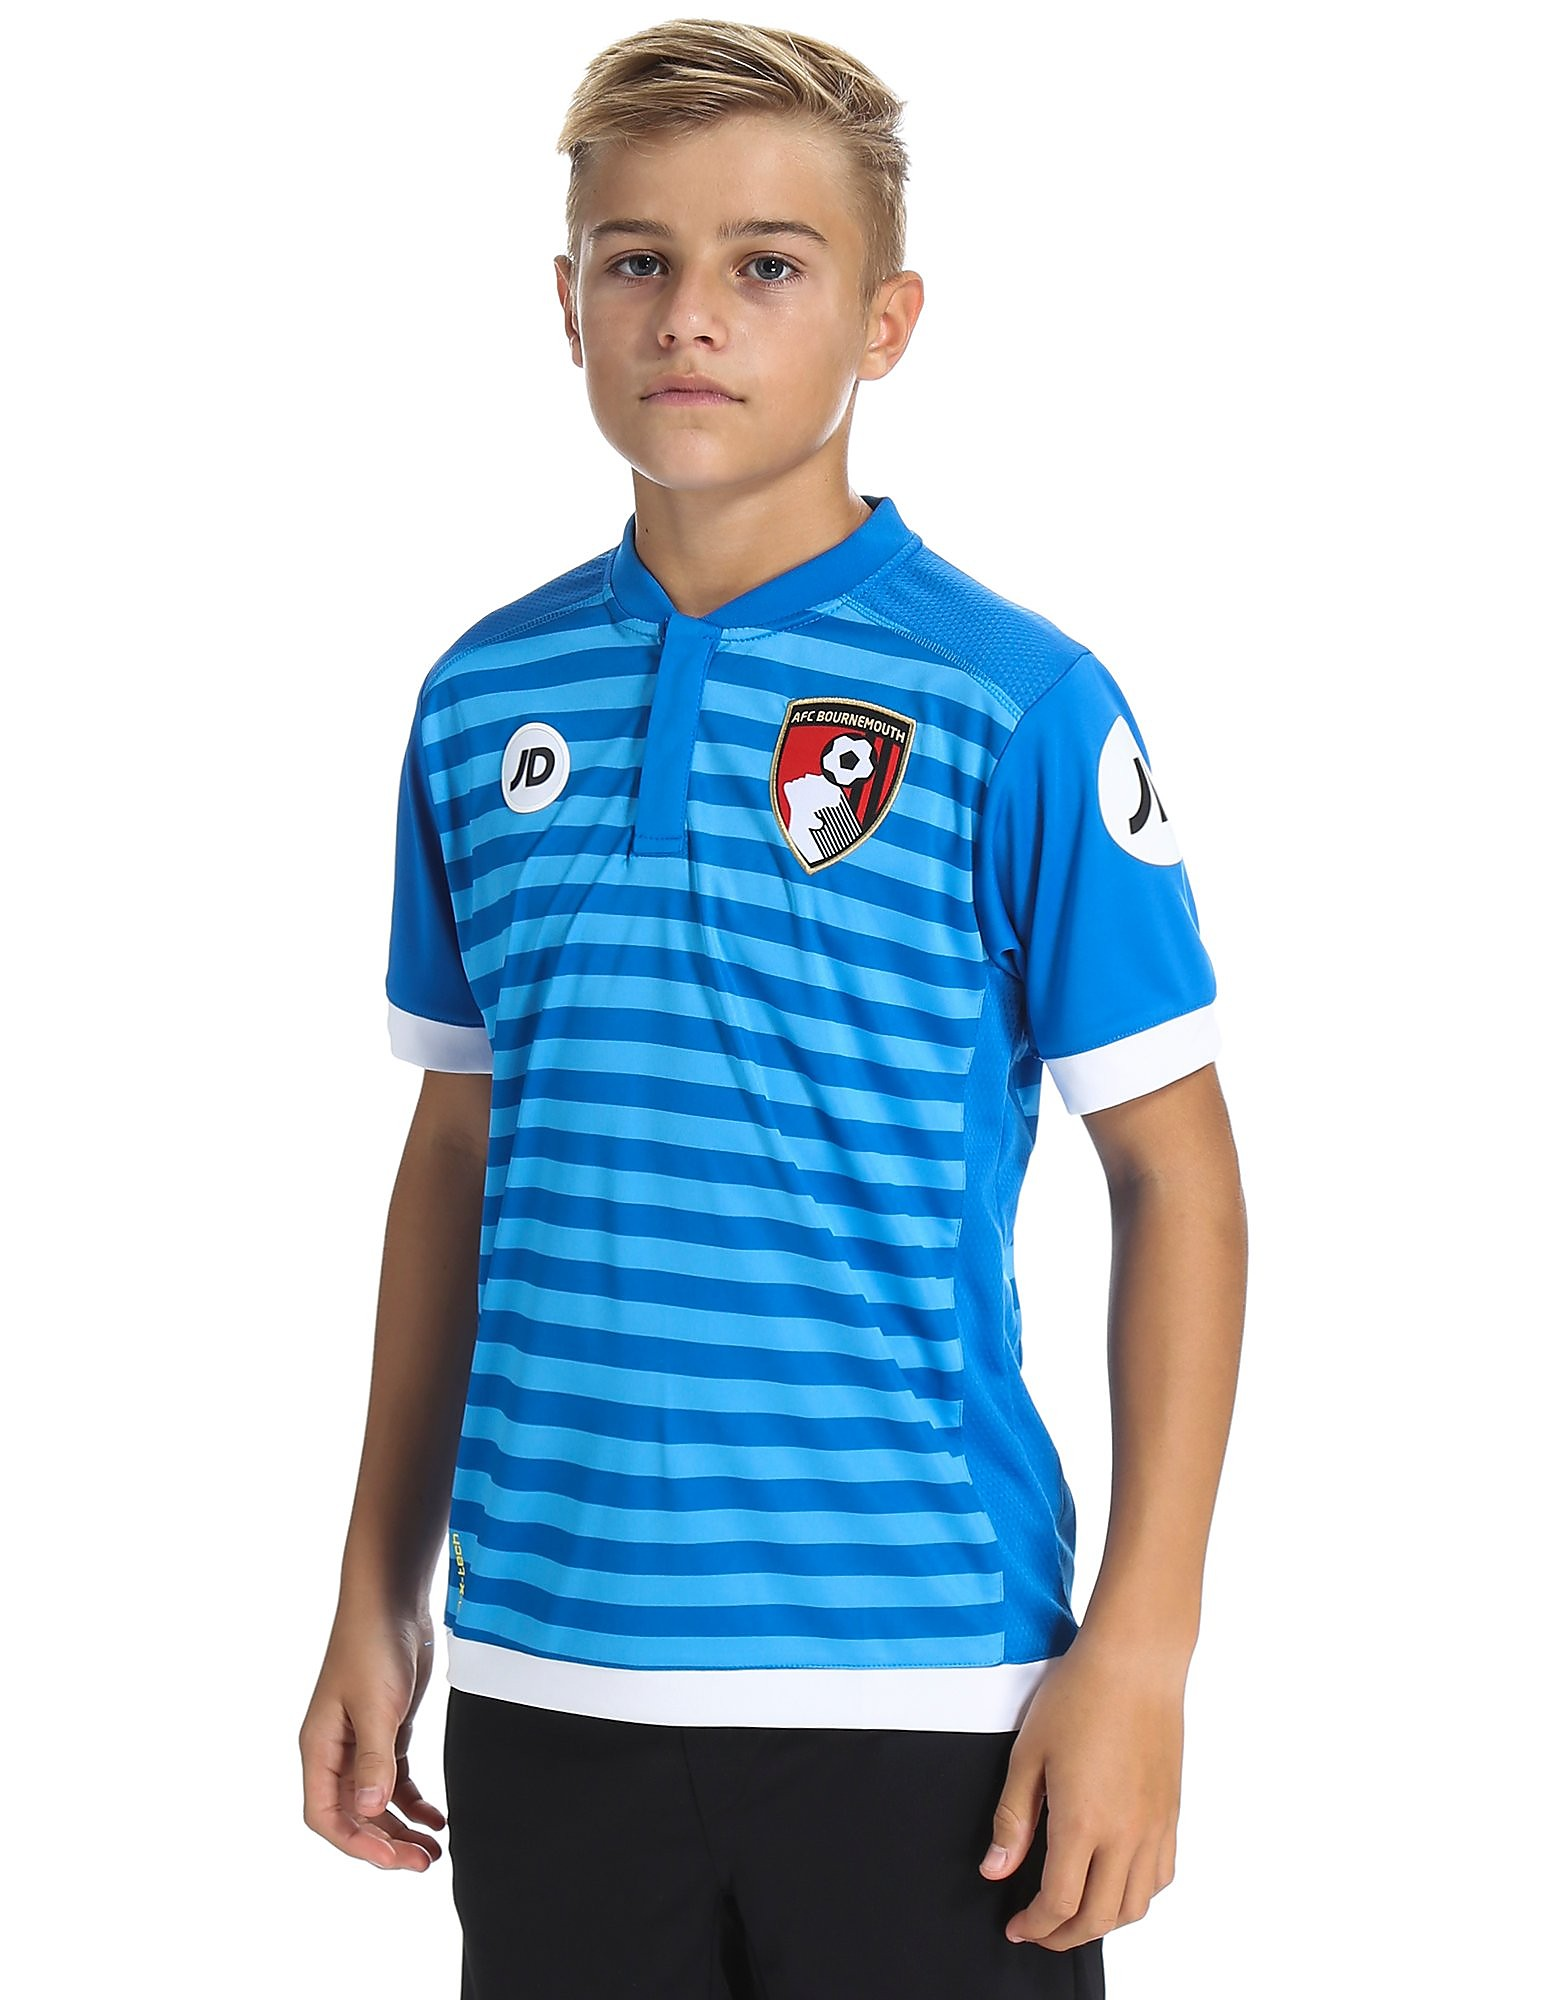 JD AFC Bournemouth 2016/17 Away Shirt Junior